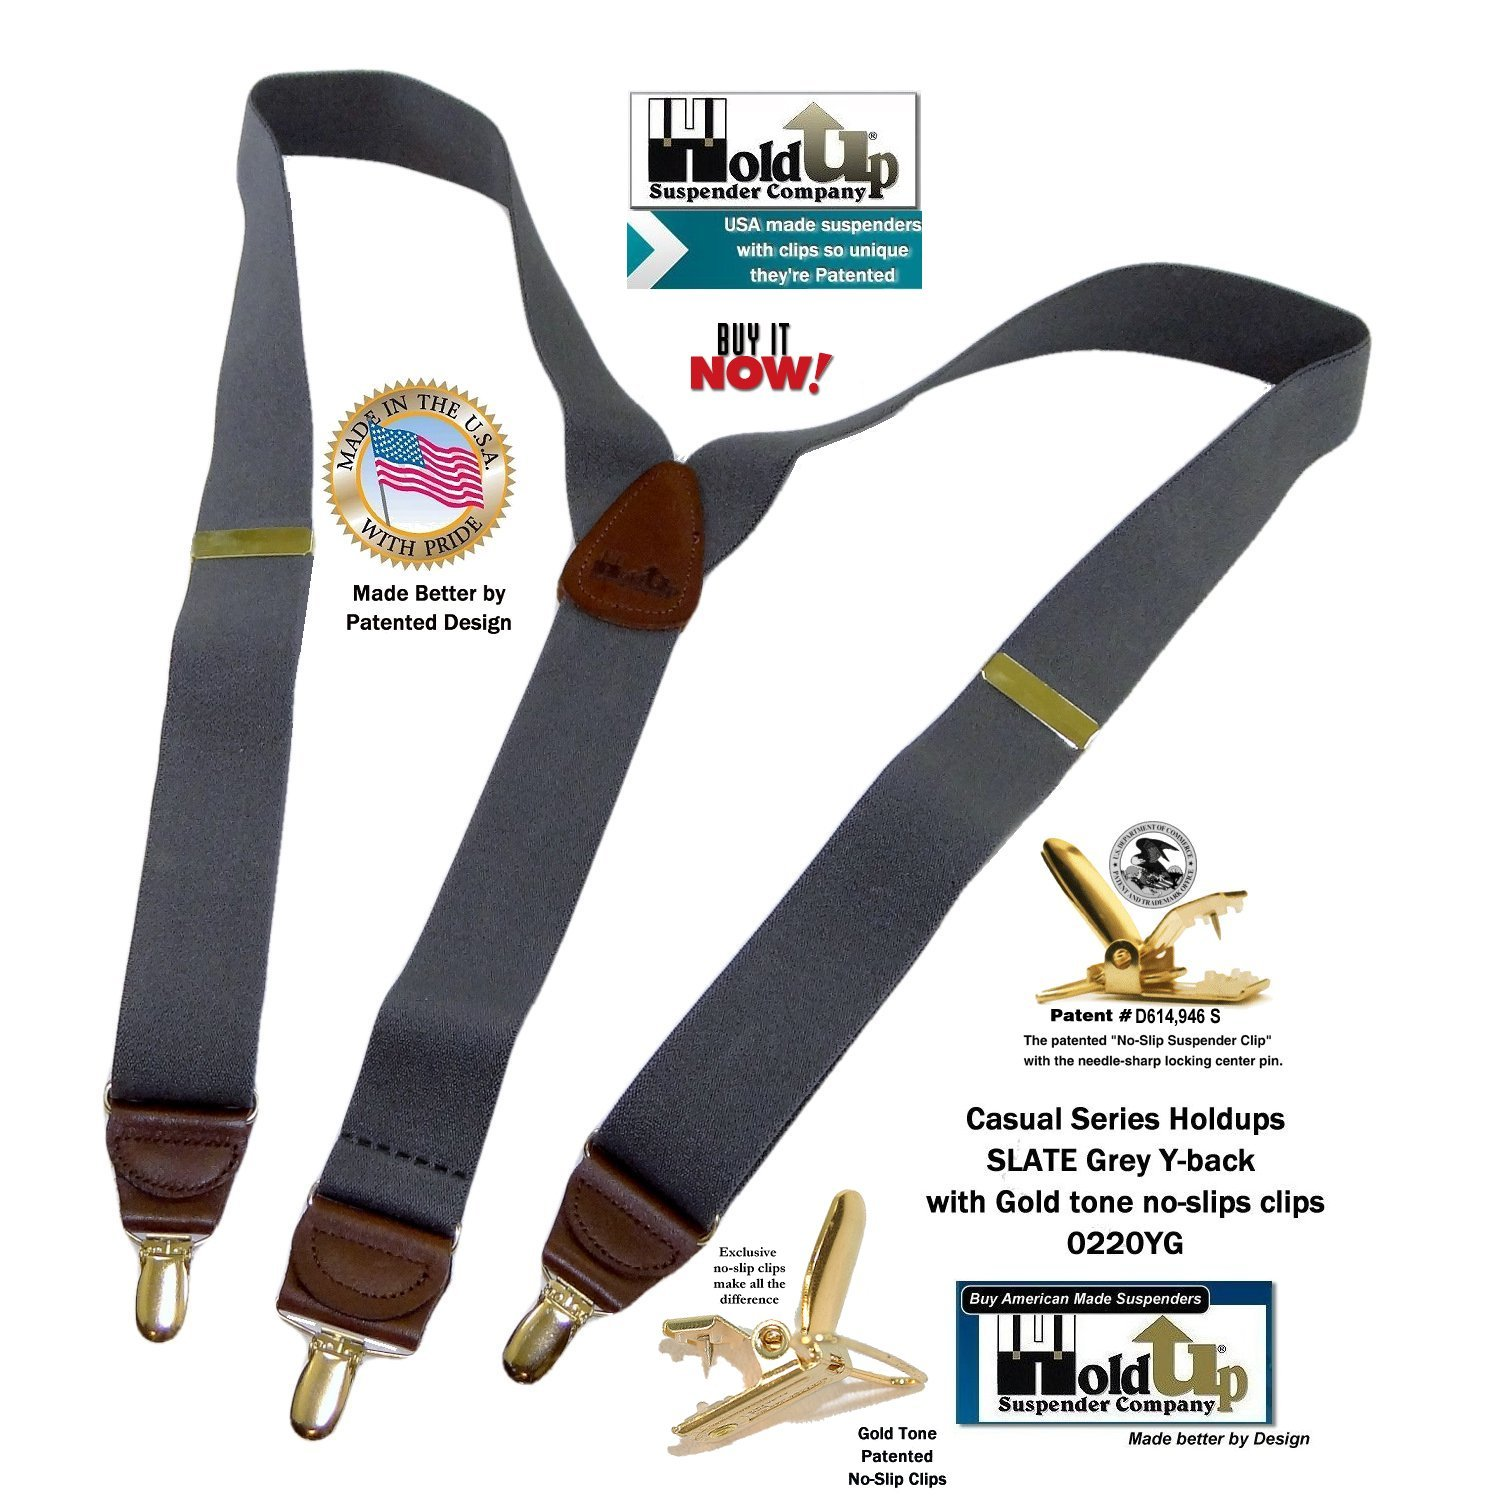 Holdup Suspender Company Slate Grey Men's Y-back Clip-on Suspenders in 1 1/2'' width featuring Patented No-slip Gold-Tone Clips by Hold-Up Suspender Co. (Image #5)